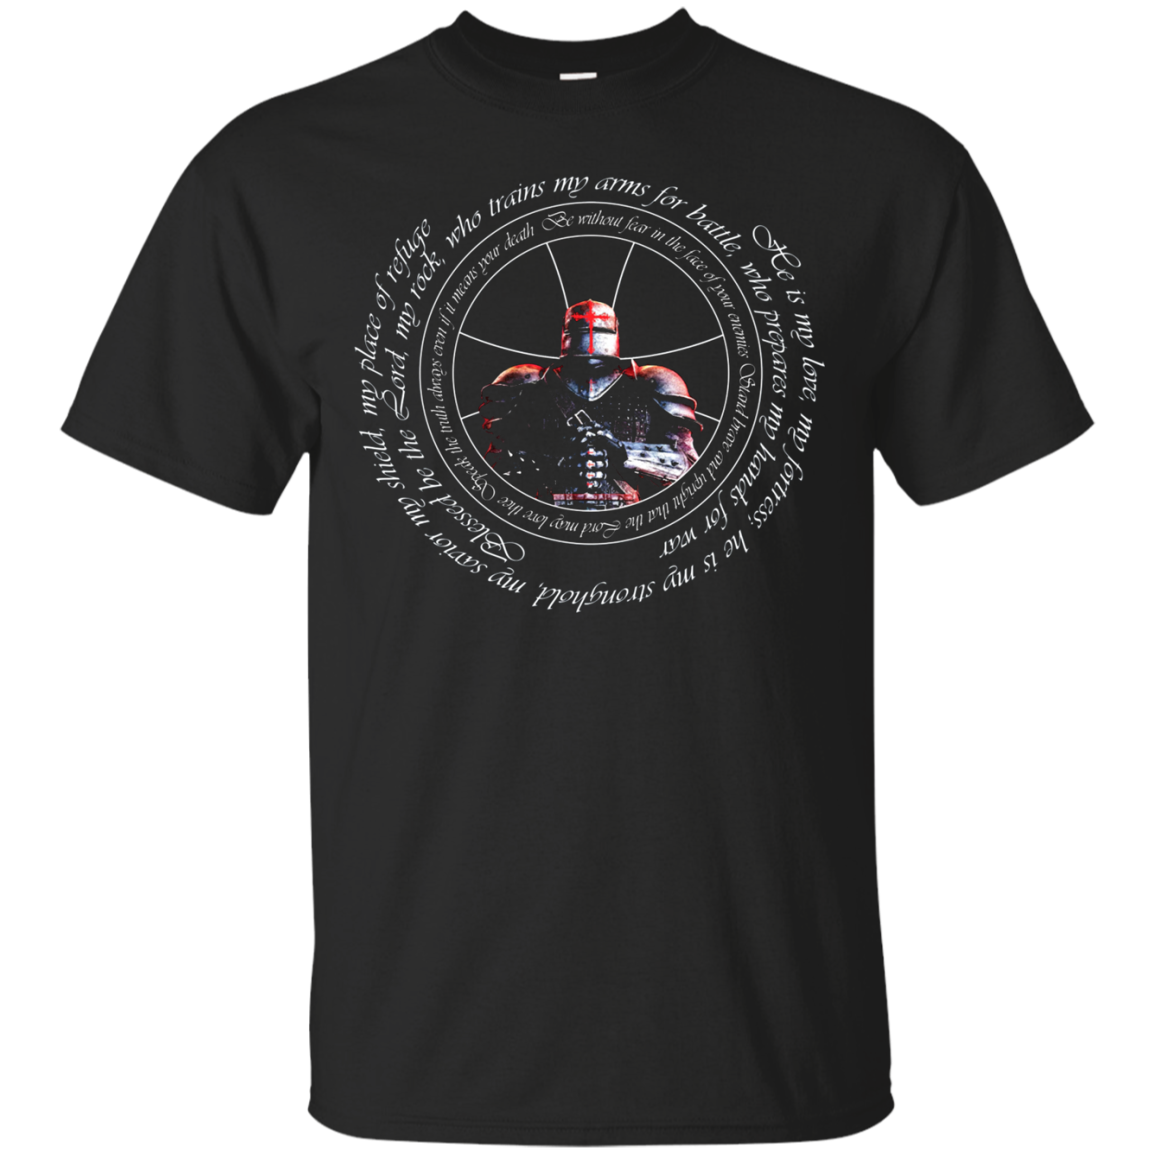 Knights Templar Oath And Prayer - The Crusader T Shirt